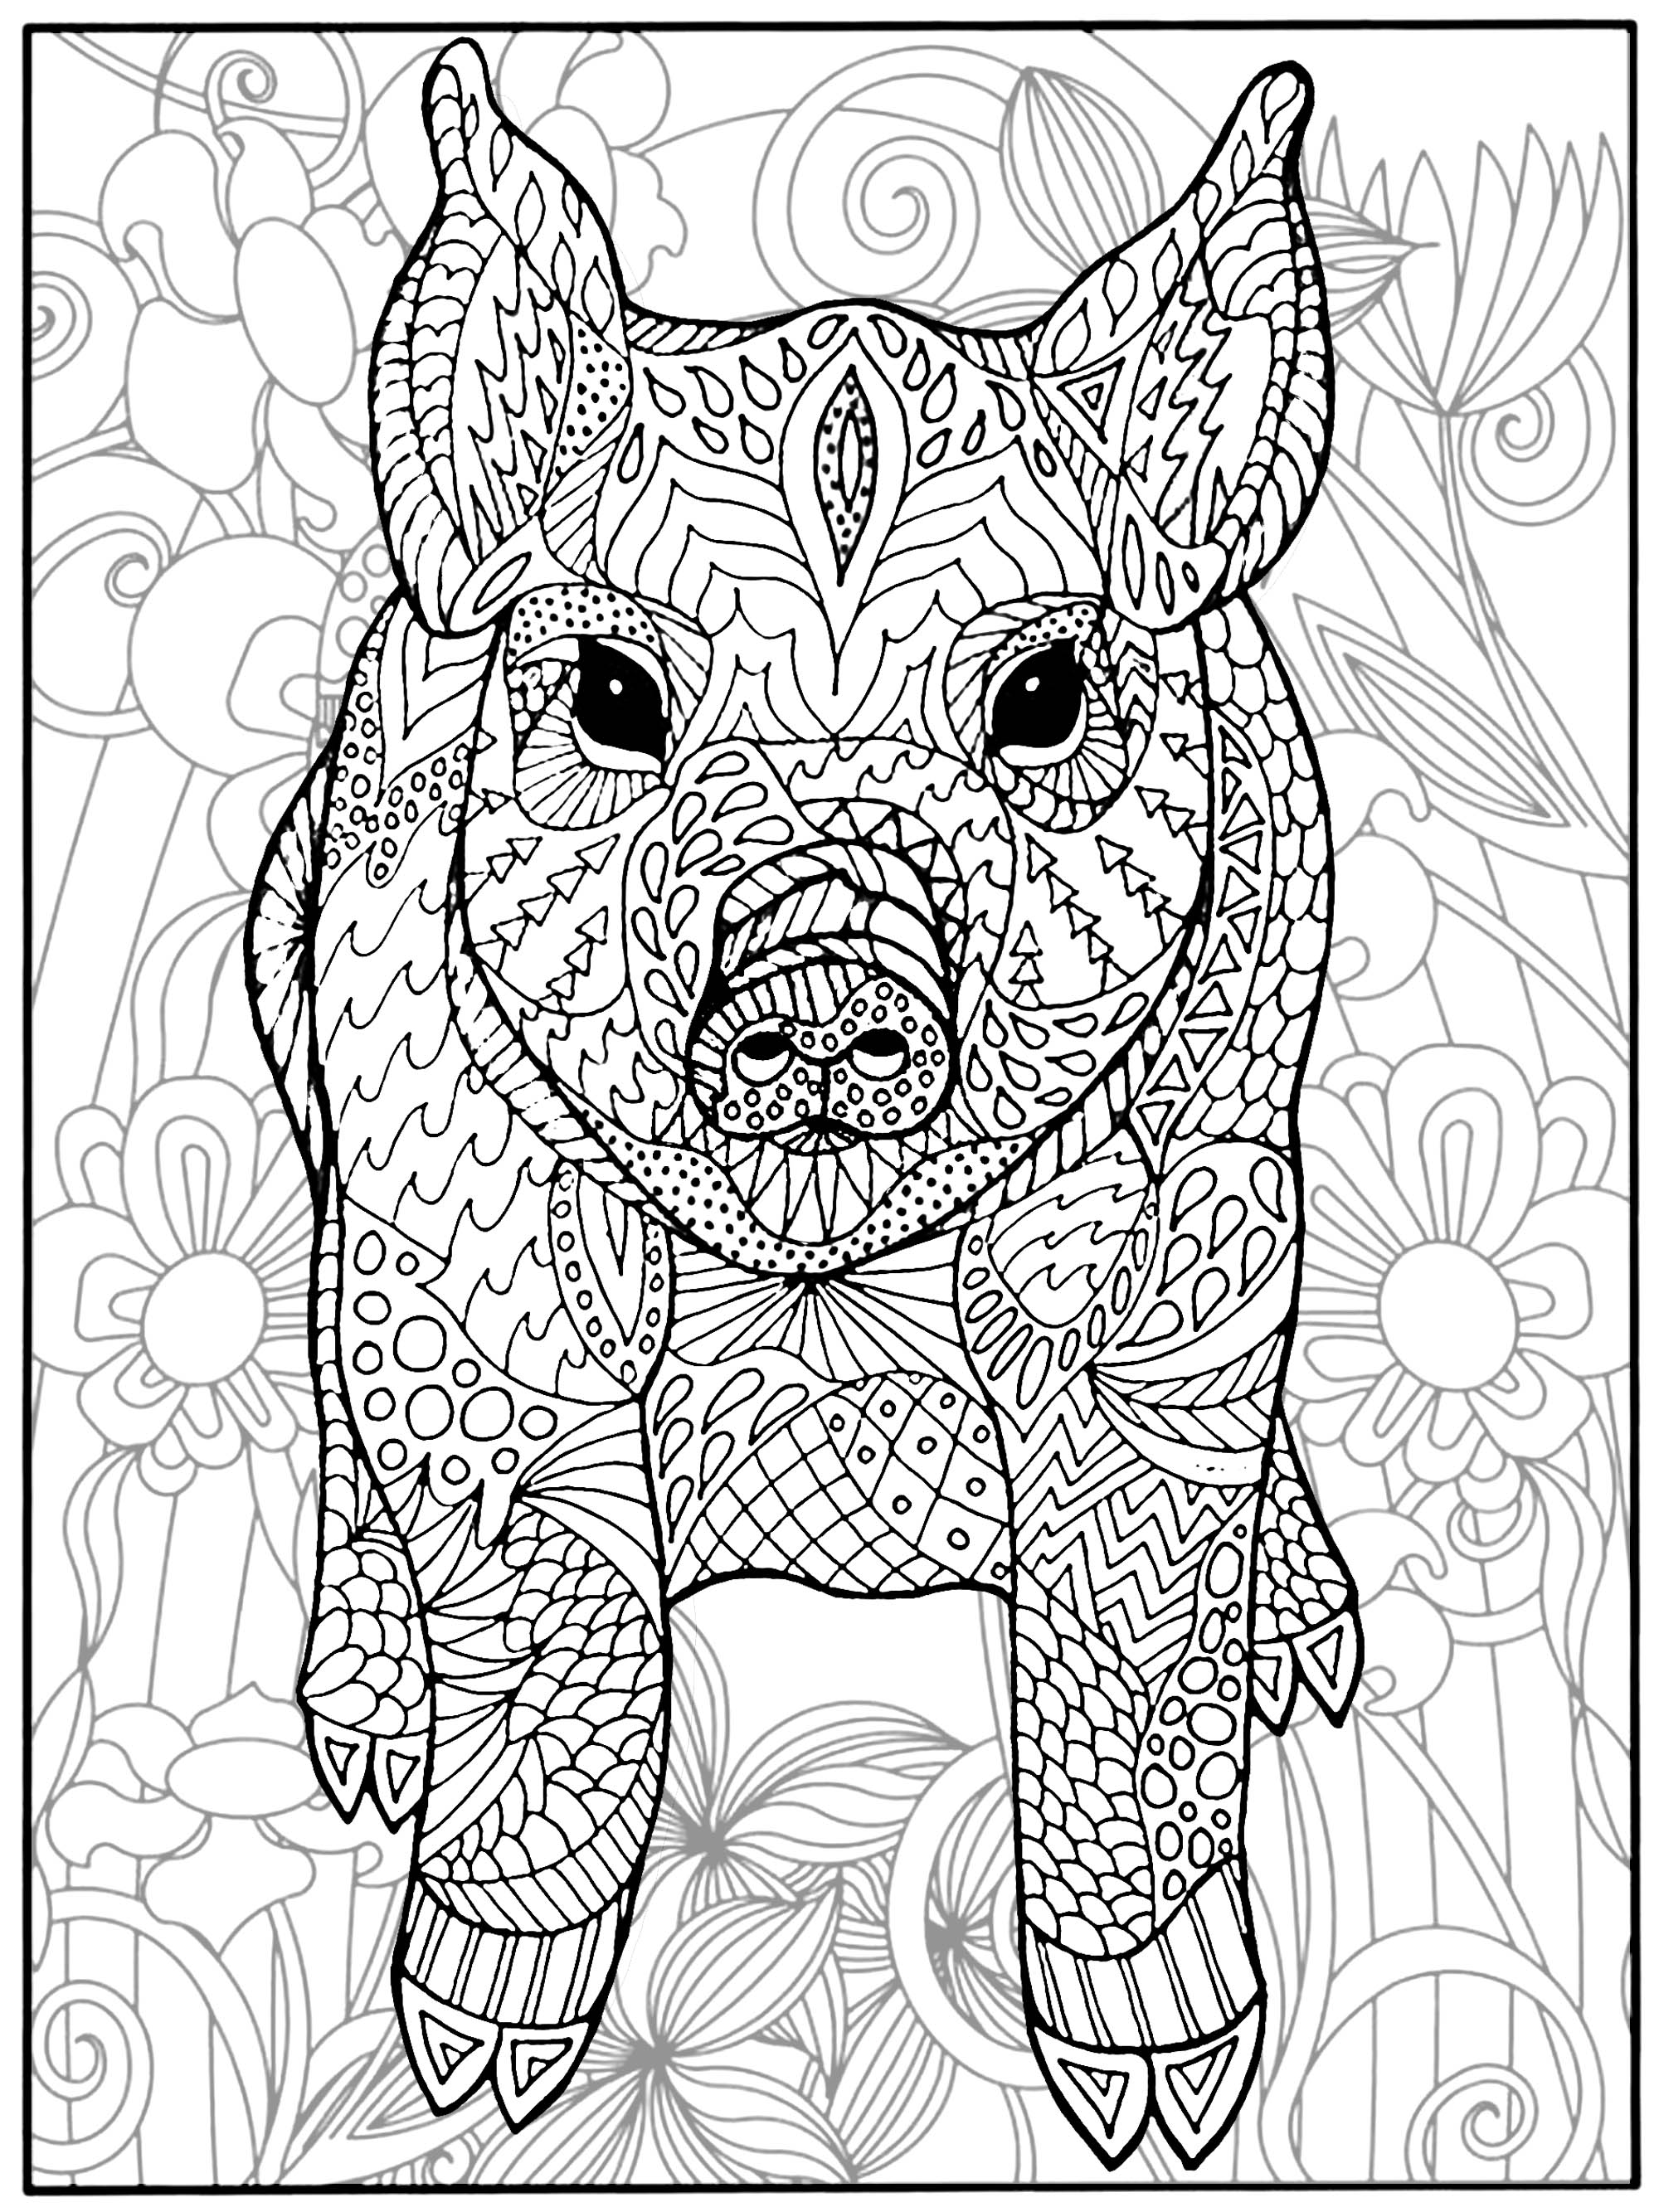 Pig and flowers - Pigs Adult Coloring Pages